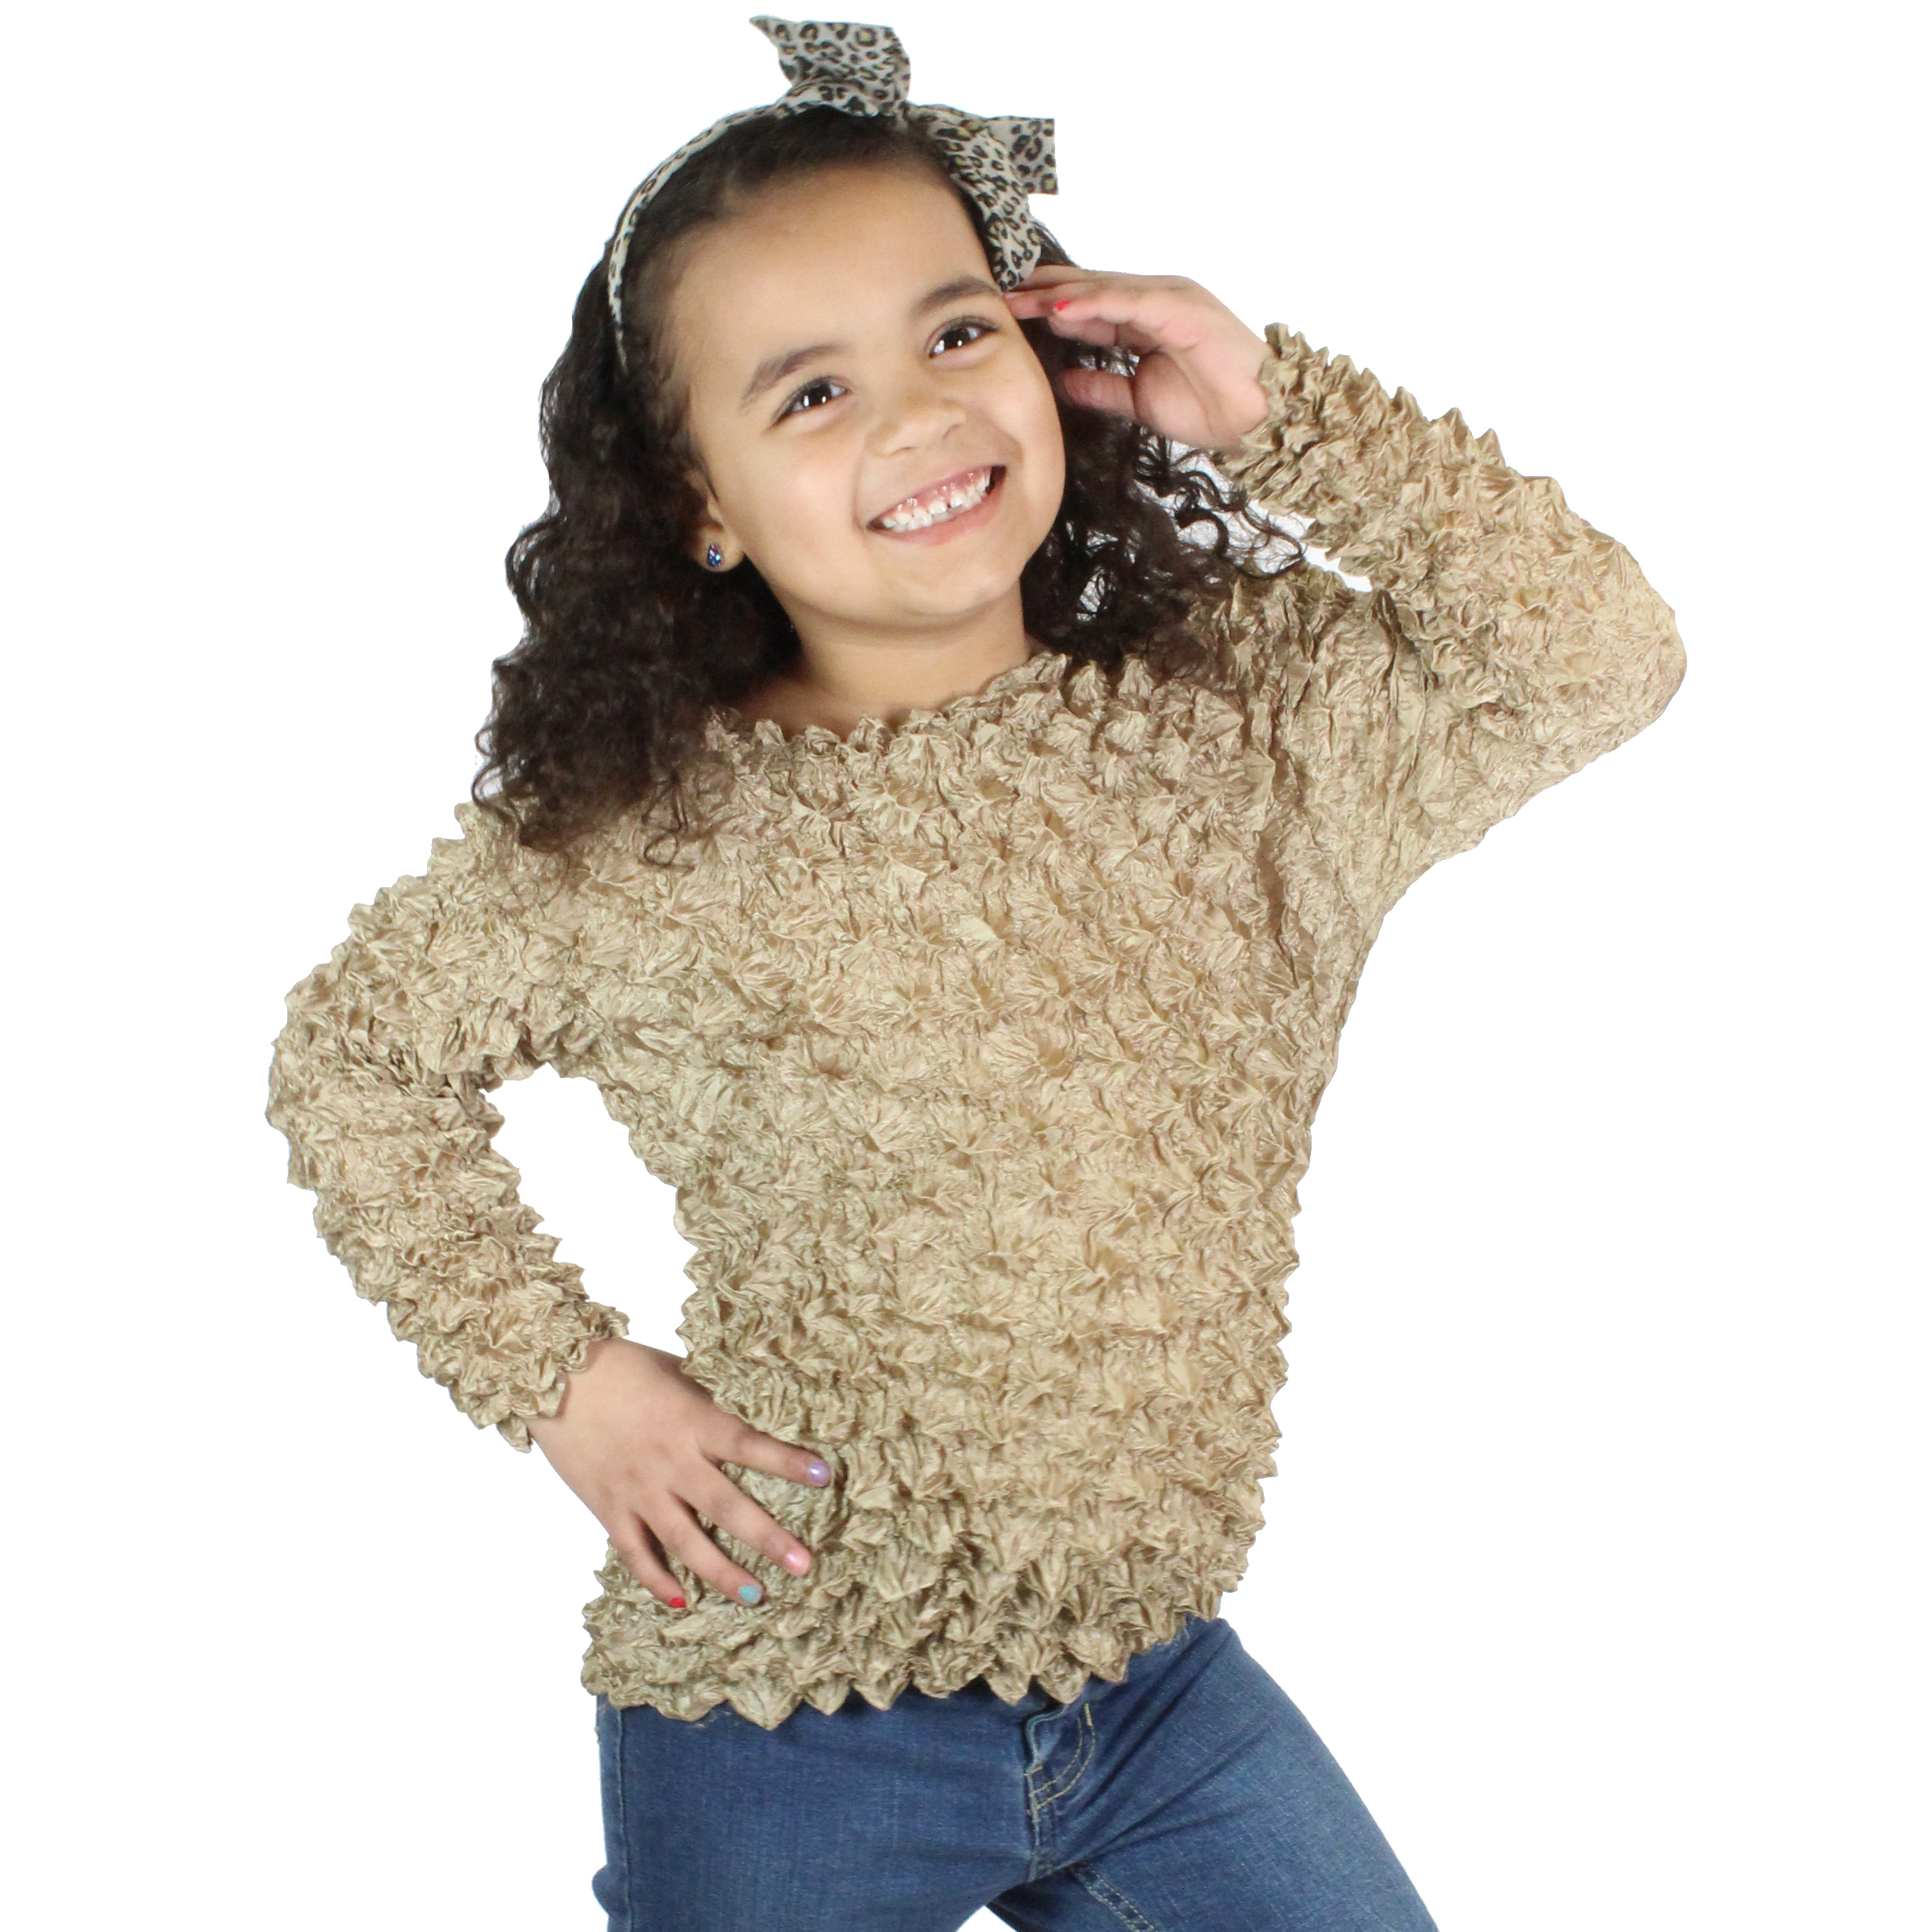 Wholesale Silky Touch Popcorn - Kids Size  Long Sleeve Champagne - Toddler - Tween